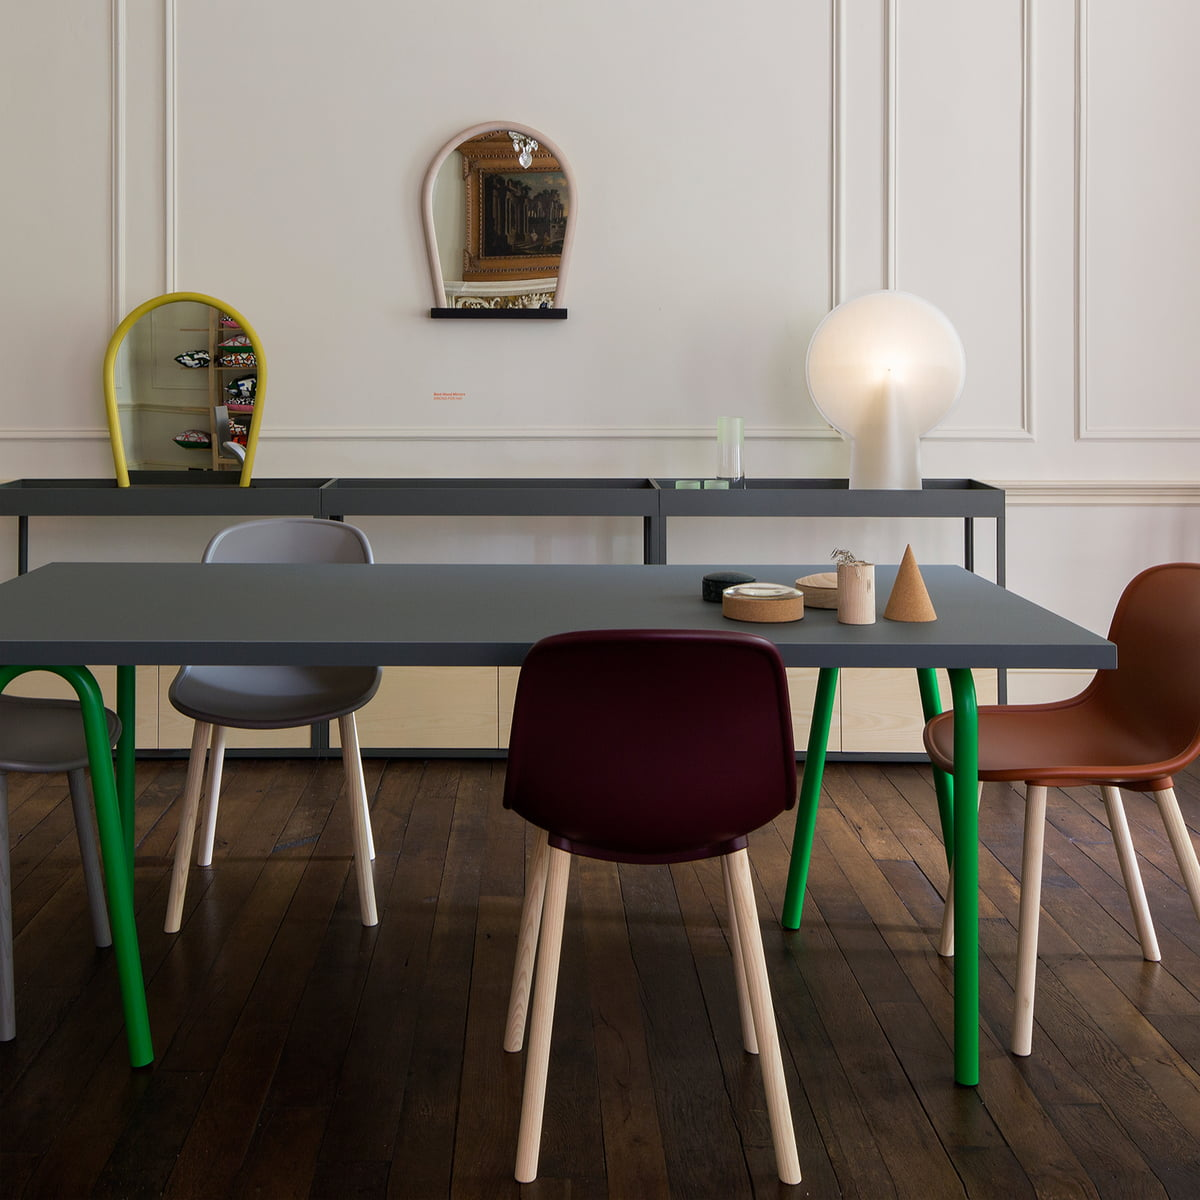 office chair conference dining scandinavian design aac22. Office Chair Conference Dining Scandinavian Design Aac22